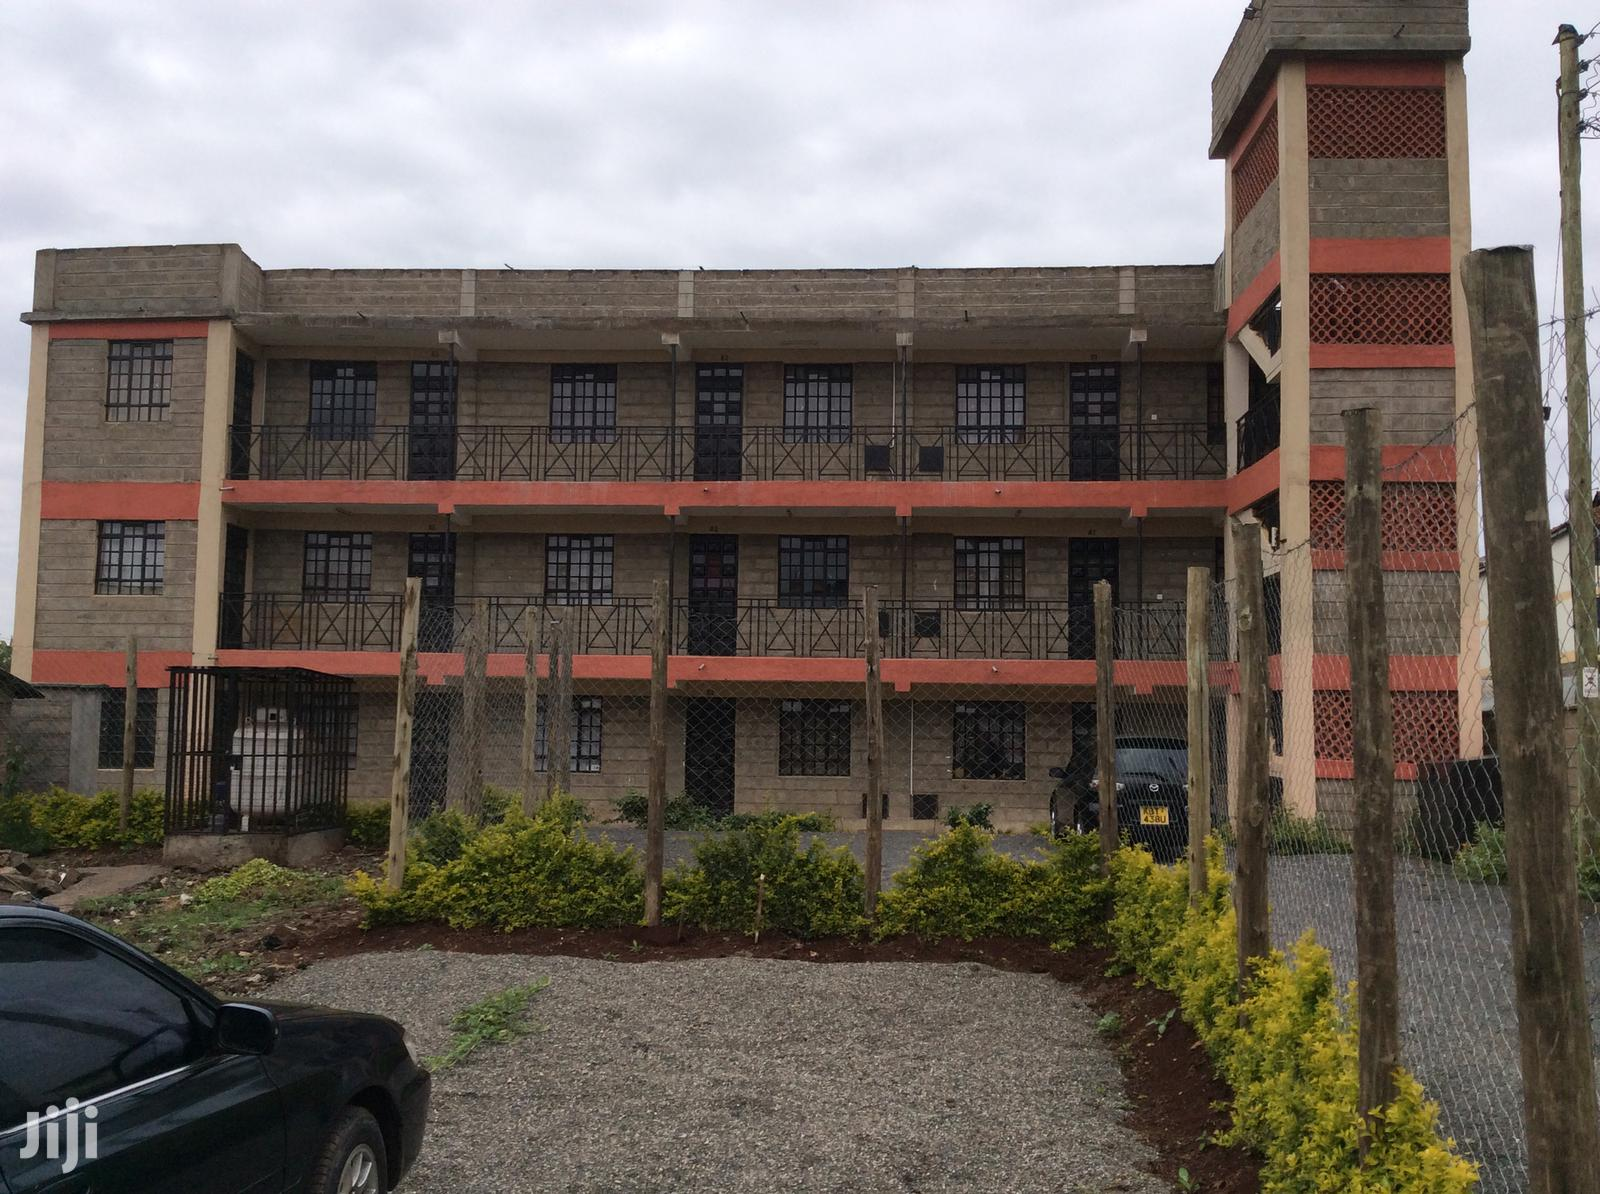 One Bedroom House For Rent - Ongata Rongai